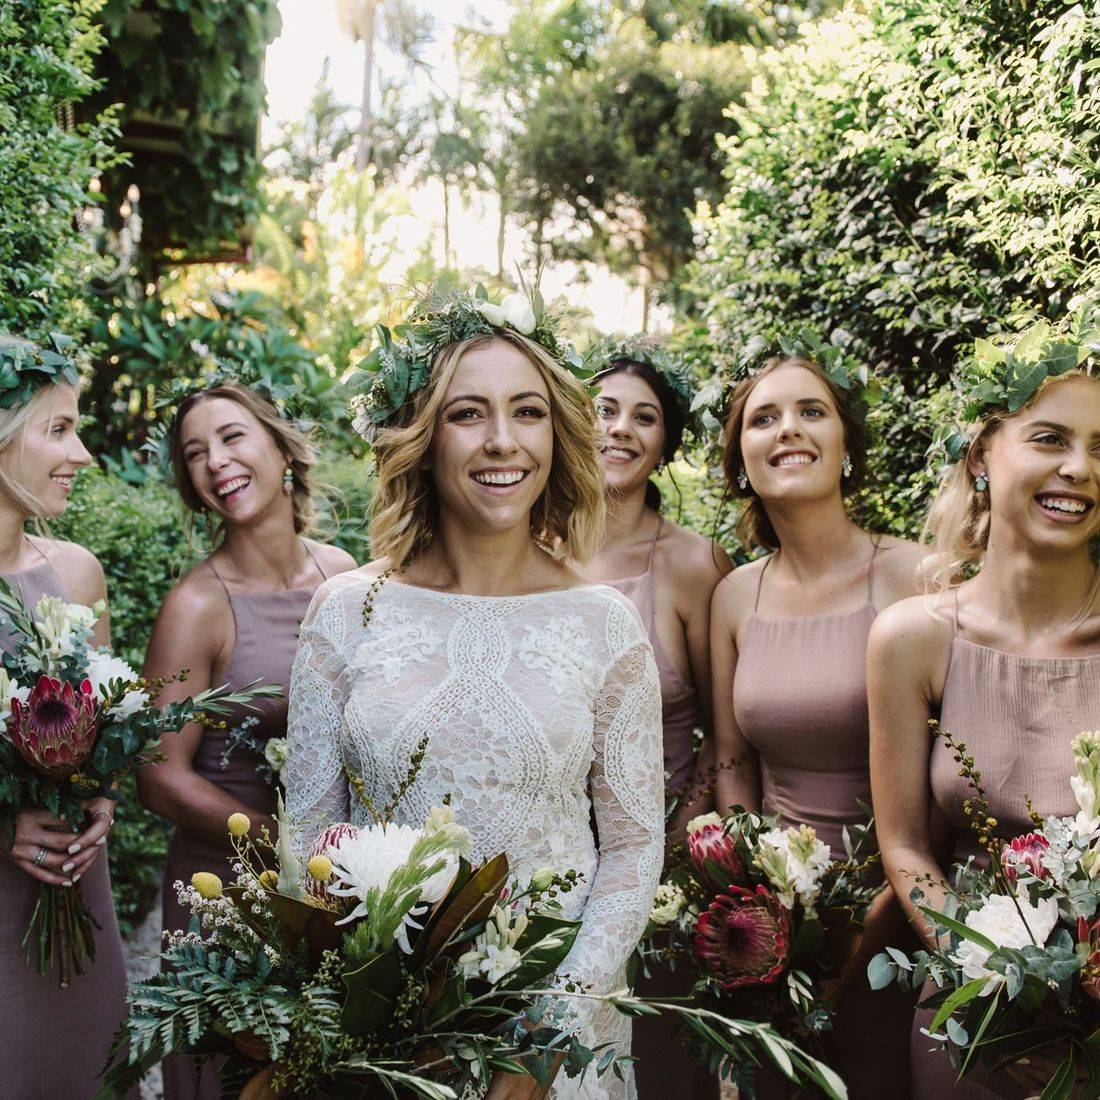 Abby and her beautiful bridesmaids